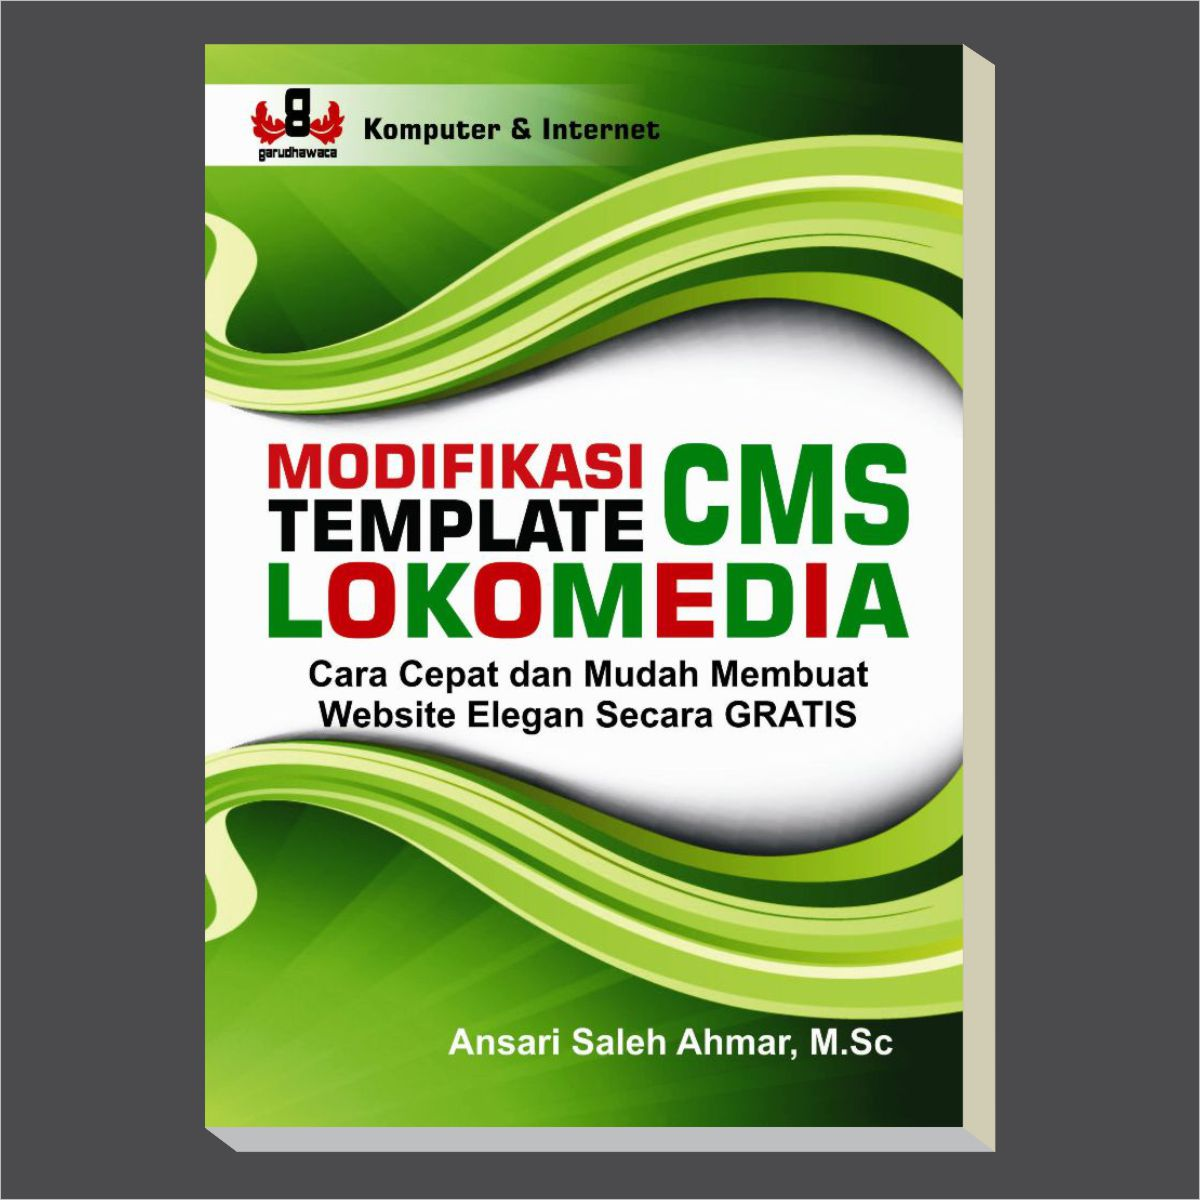 http://penerbitgarudhawaca.com/wp-content/uploads/2015/01/Display-Modifikasi-Template-Lokomedia.jpg